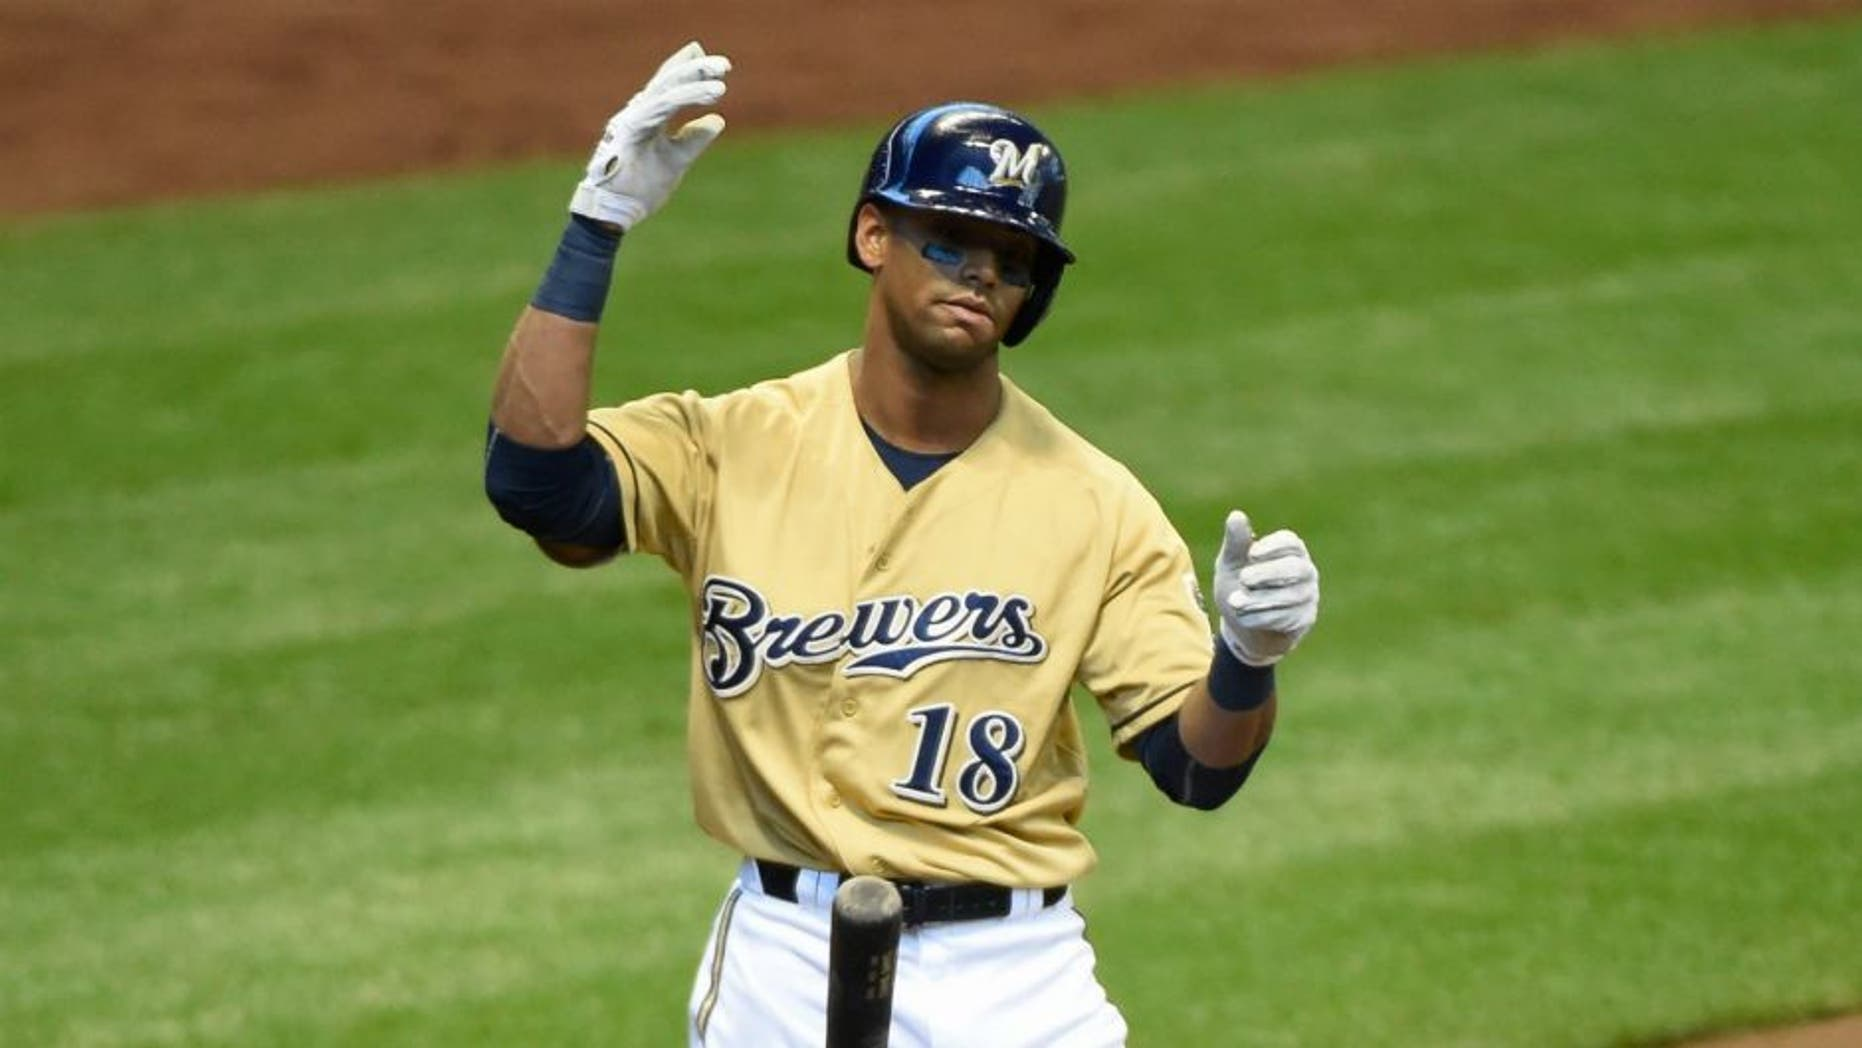 Apr 26, 2015; Milwaukee, WI, USA; Milwaukee Brewers left fielder Khris Davis (18) reacts after striking out in the first inning during the game against the St. Louis Cardinals at Miller Park. Mandatory Credit: Benny Sieu-USA TODAY Sports